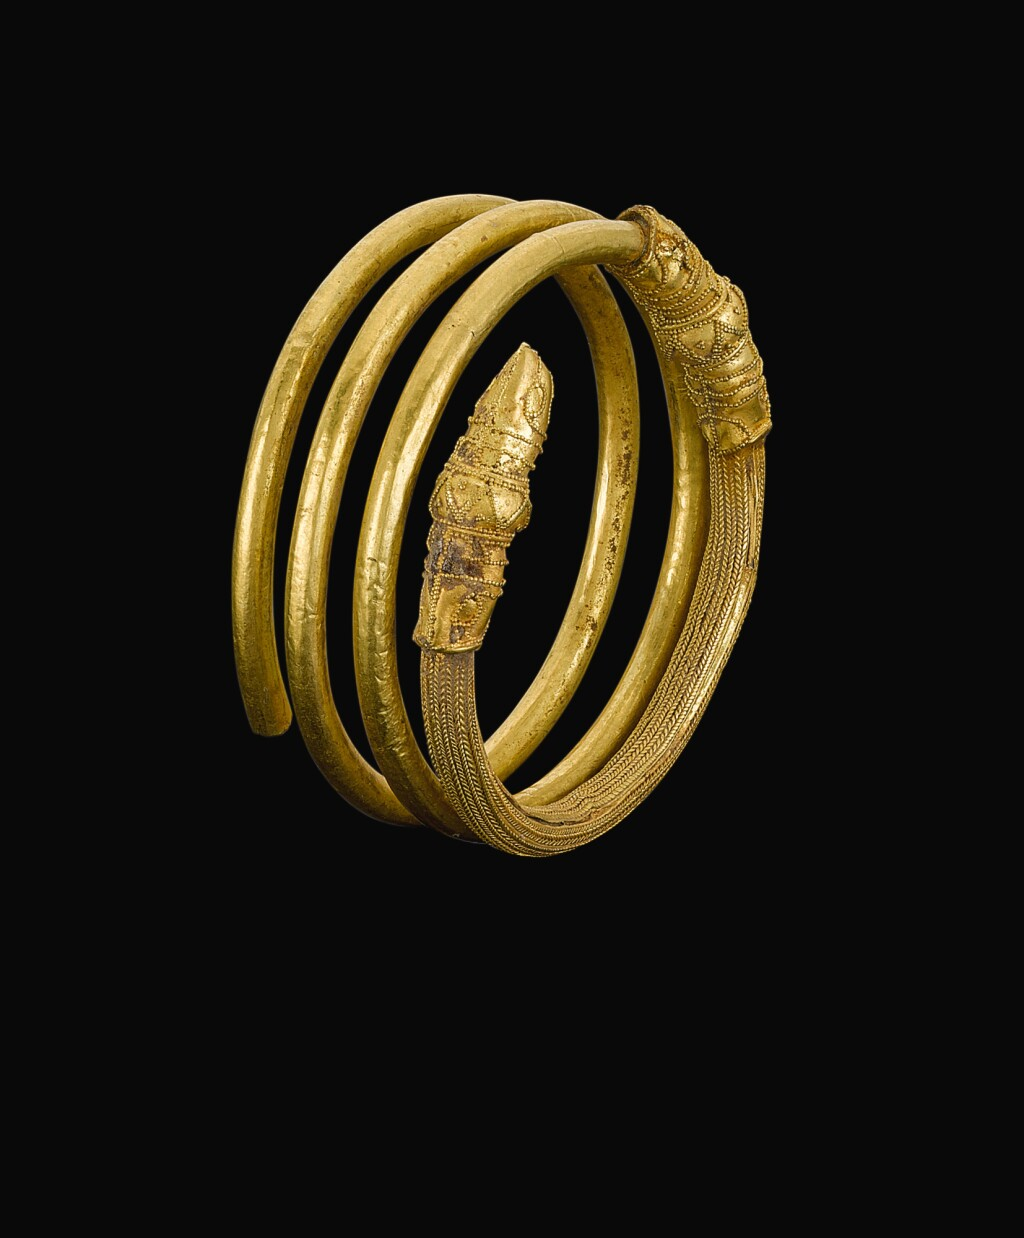 AN ETRUSCAN GOLD HAIR-RING, CIRCA 700-600 B.C.